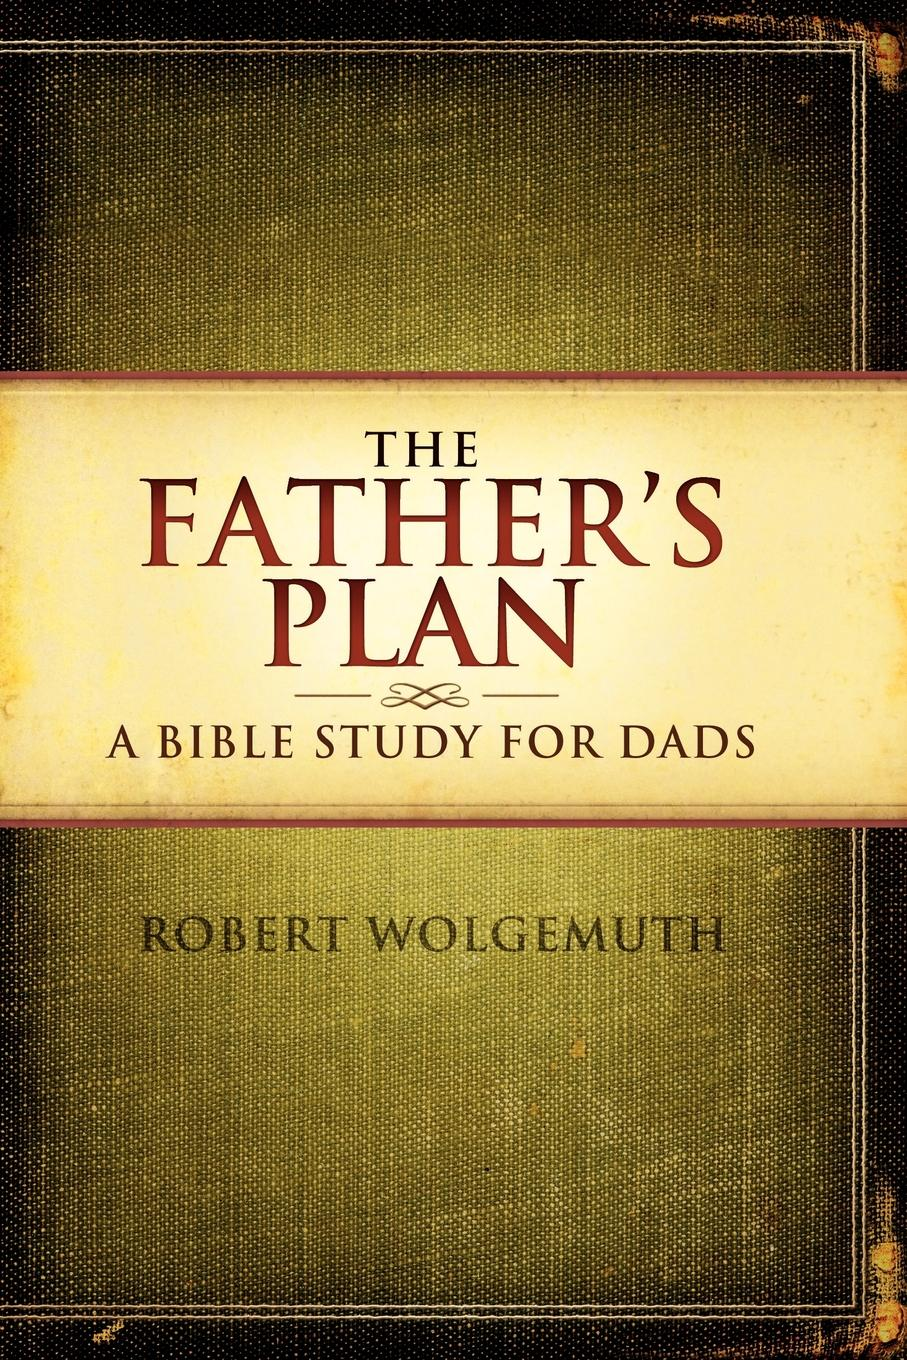 лучшая цена Robert Wolgemuth The Father.s Plan. A Bible Study for Dads